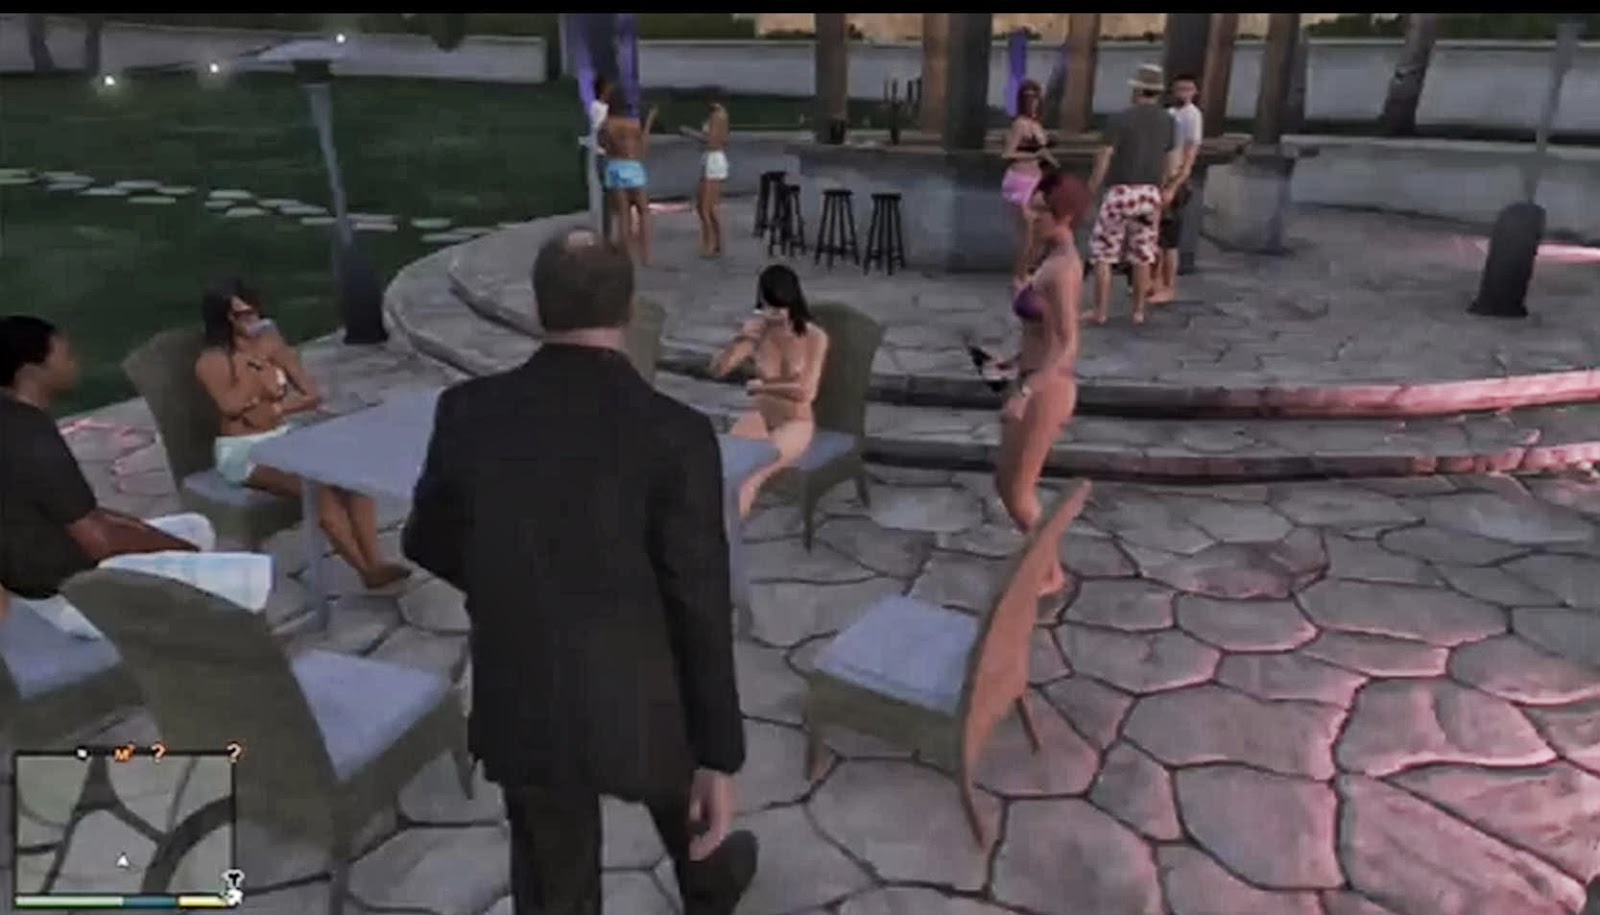 Playboy mansion gta topless exposed photos